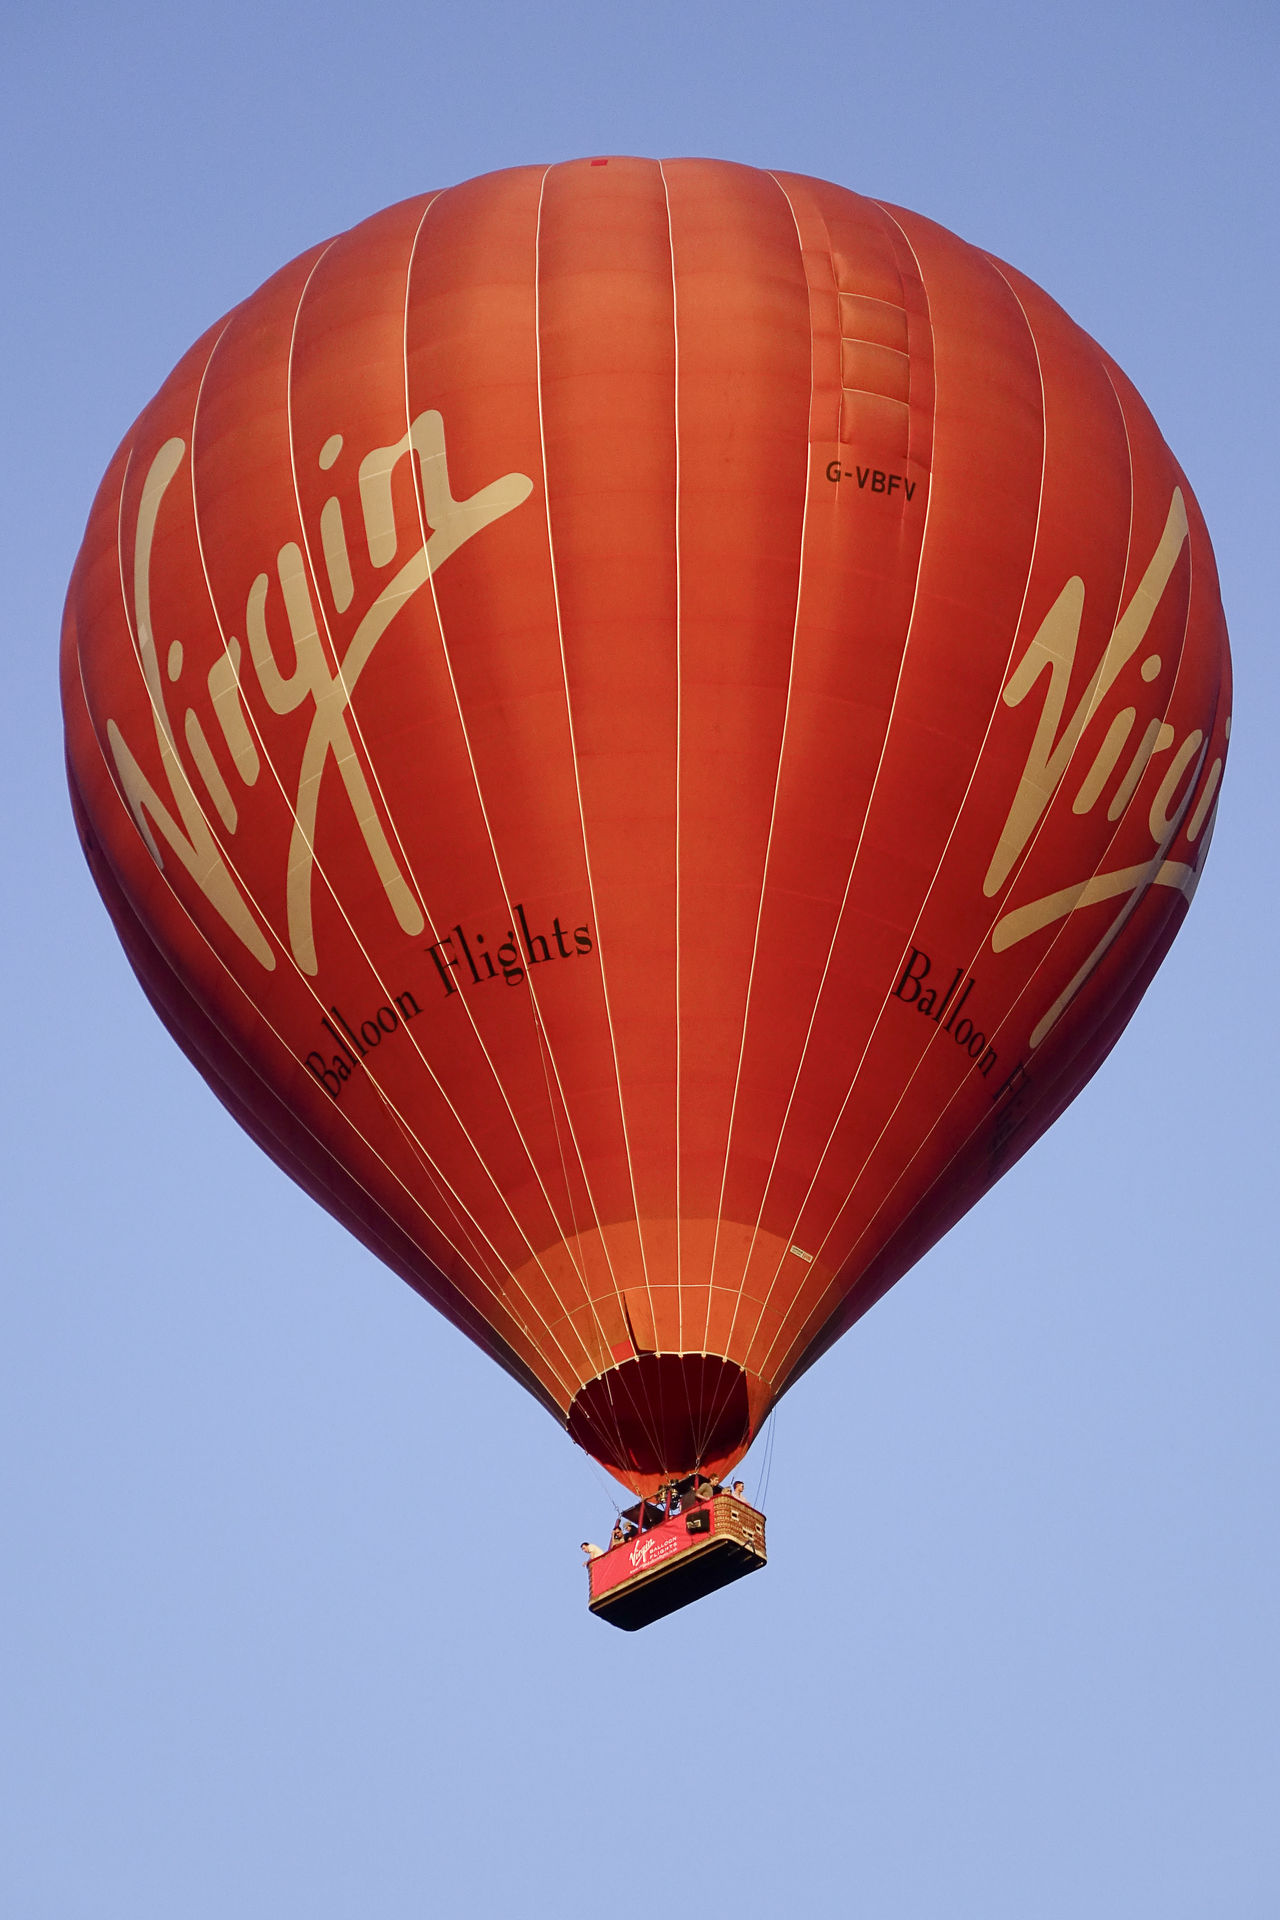 A Virgin hot air balloon flight over the Surrey countryside in Milford, England. England England, UK England🇬🇧 Flight Godalming Hot Air Balloon Hot Air Ballooning Hot Air Balloons Milford Richard Branson Surrey Surrey Countryside Uk Virgin